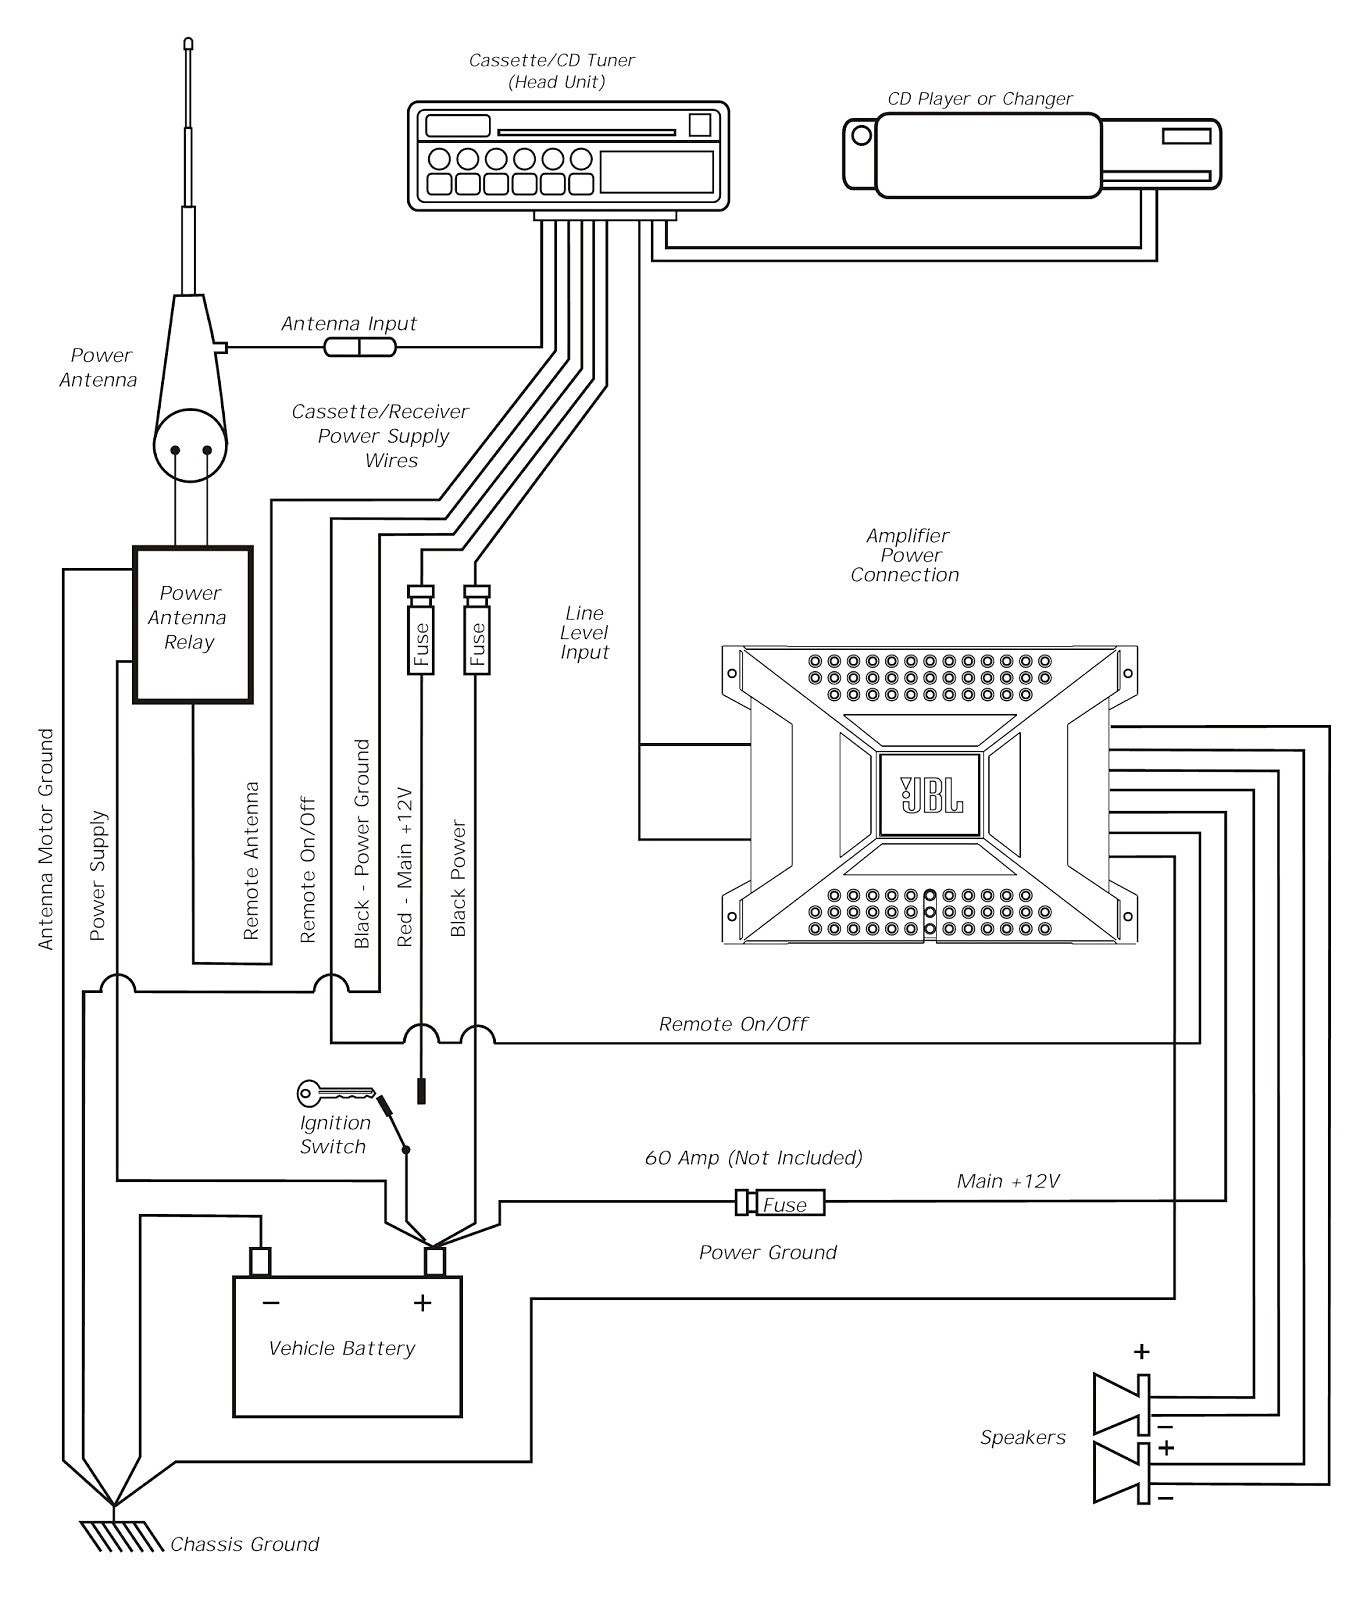 2000 Chevy Malibu Wiring Diagram Fh X700bt Wiring Diagram Wiring Diagram Inside Of 2000 Chevy Malibu Wiring Diagram 2008 Silverado 2500hd Wiring Diagram